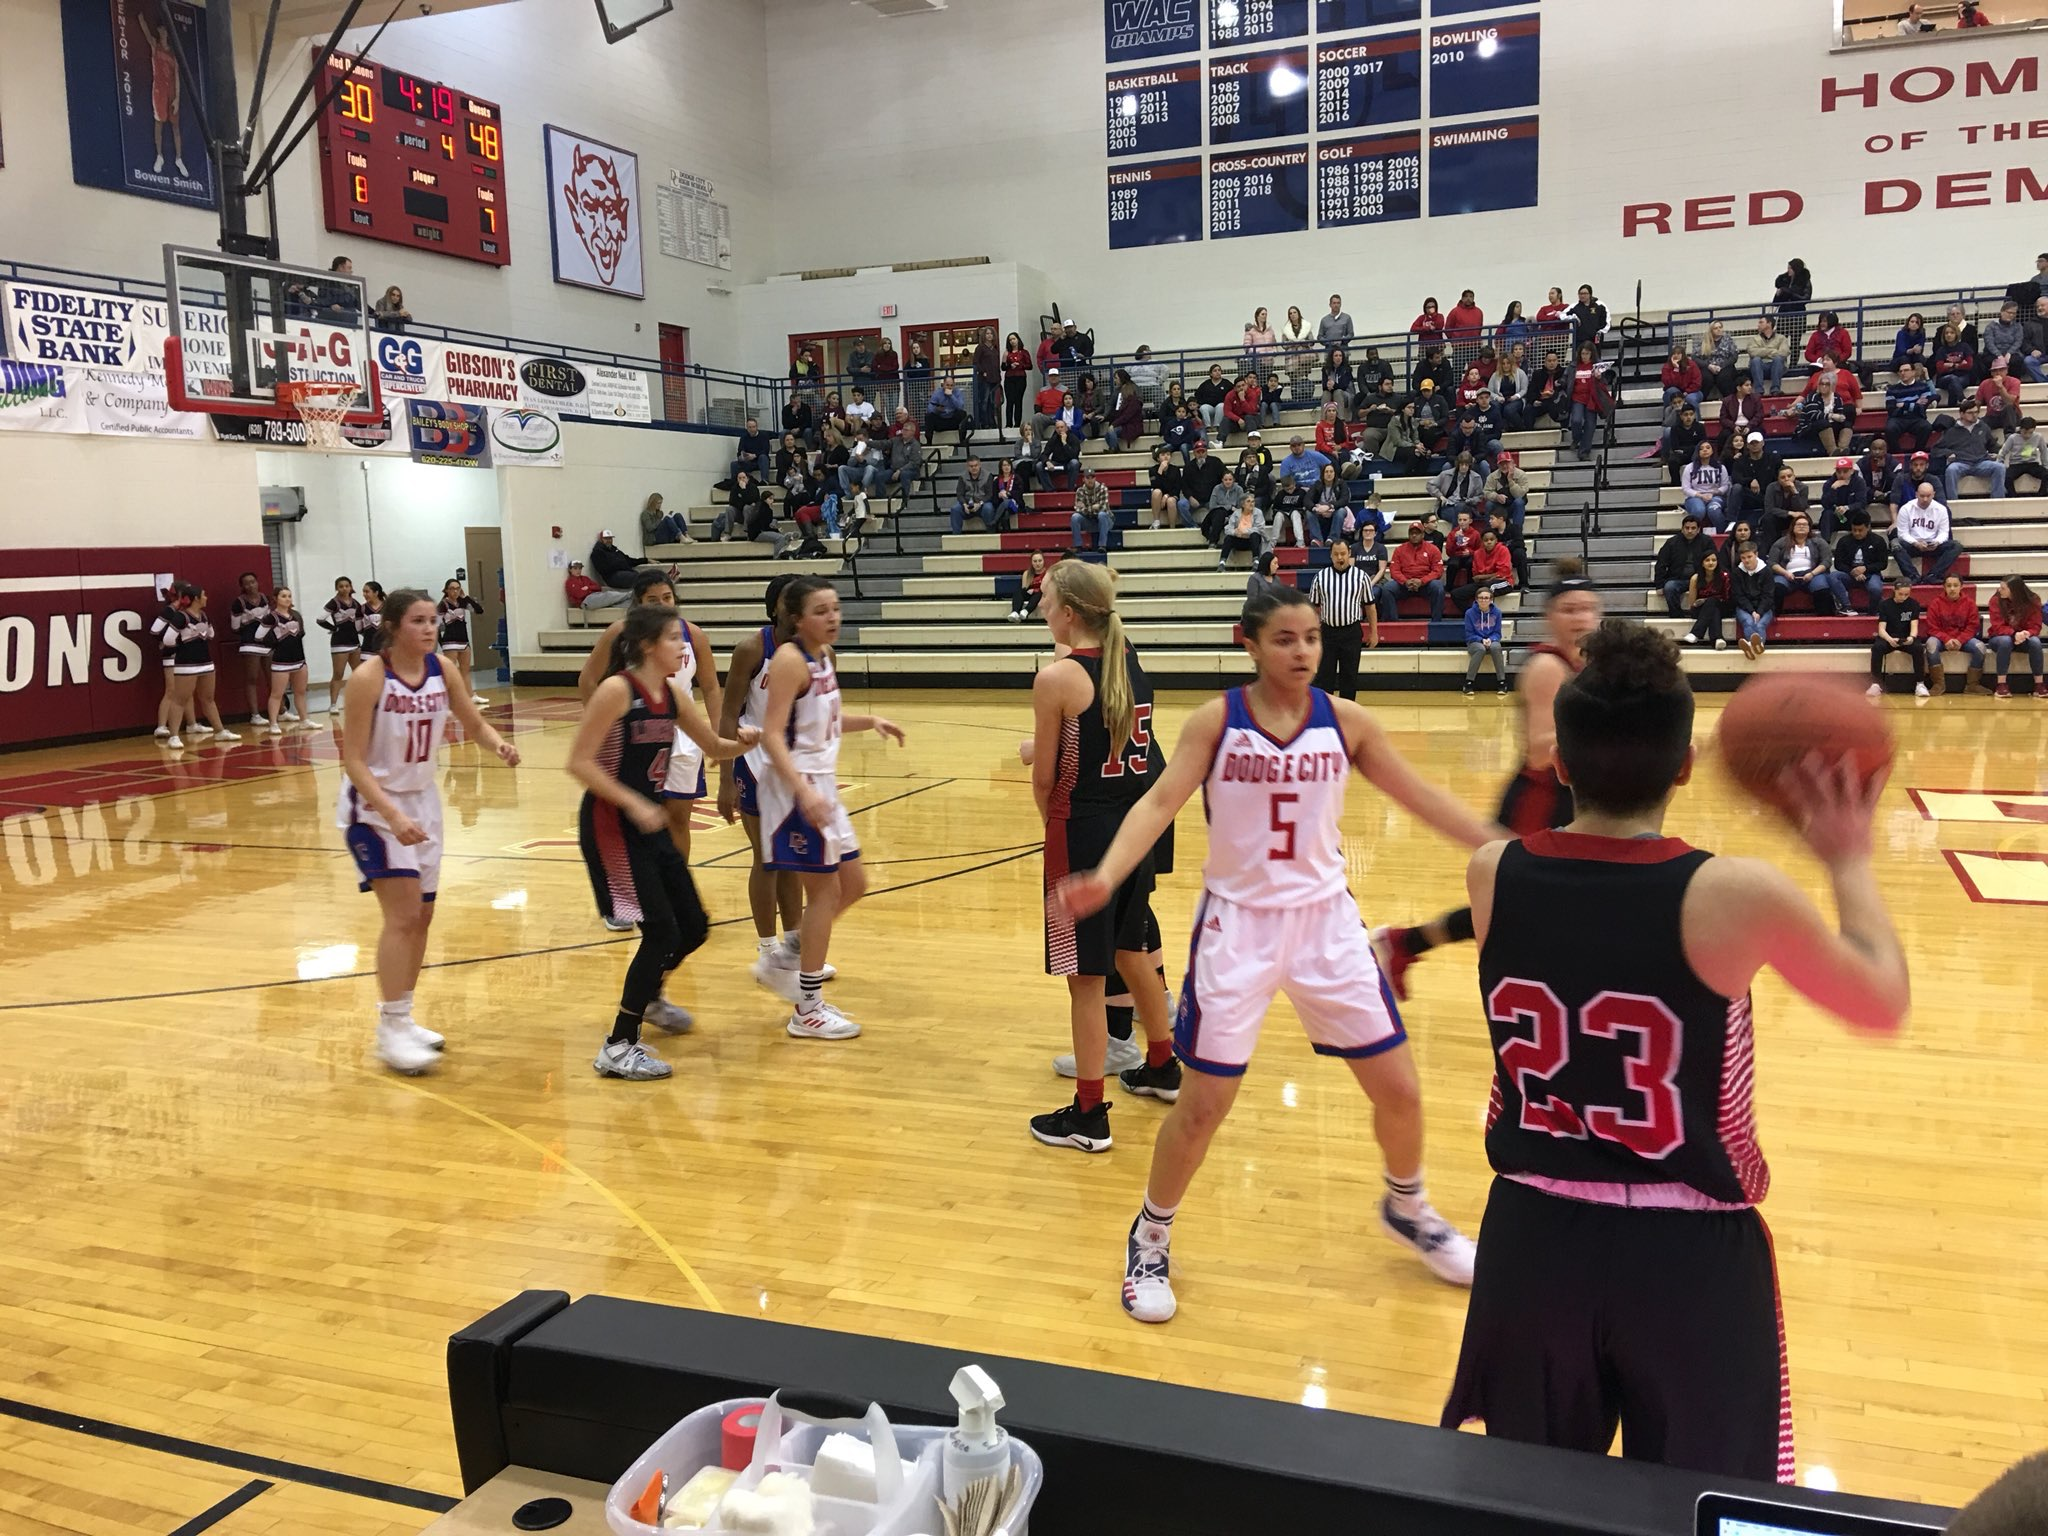 Lady Redskins Win Third Straight WAC Title